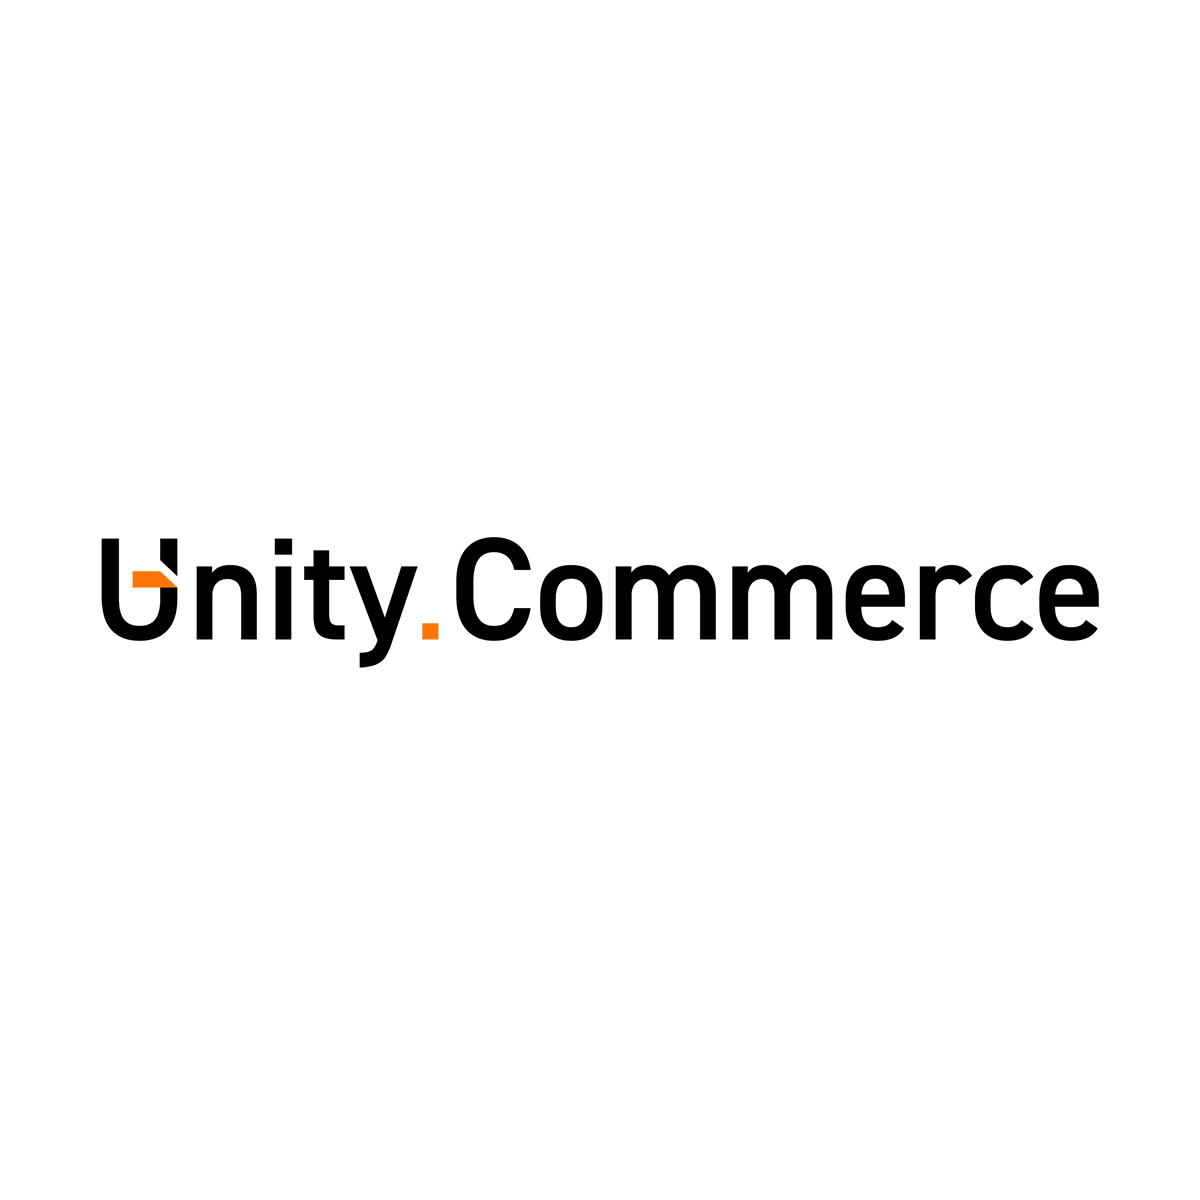 Unity.Commerce